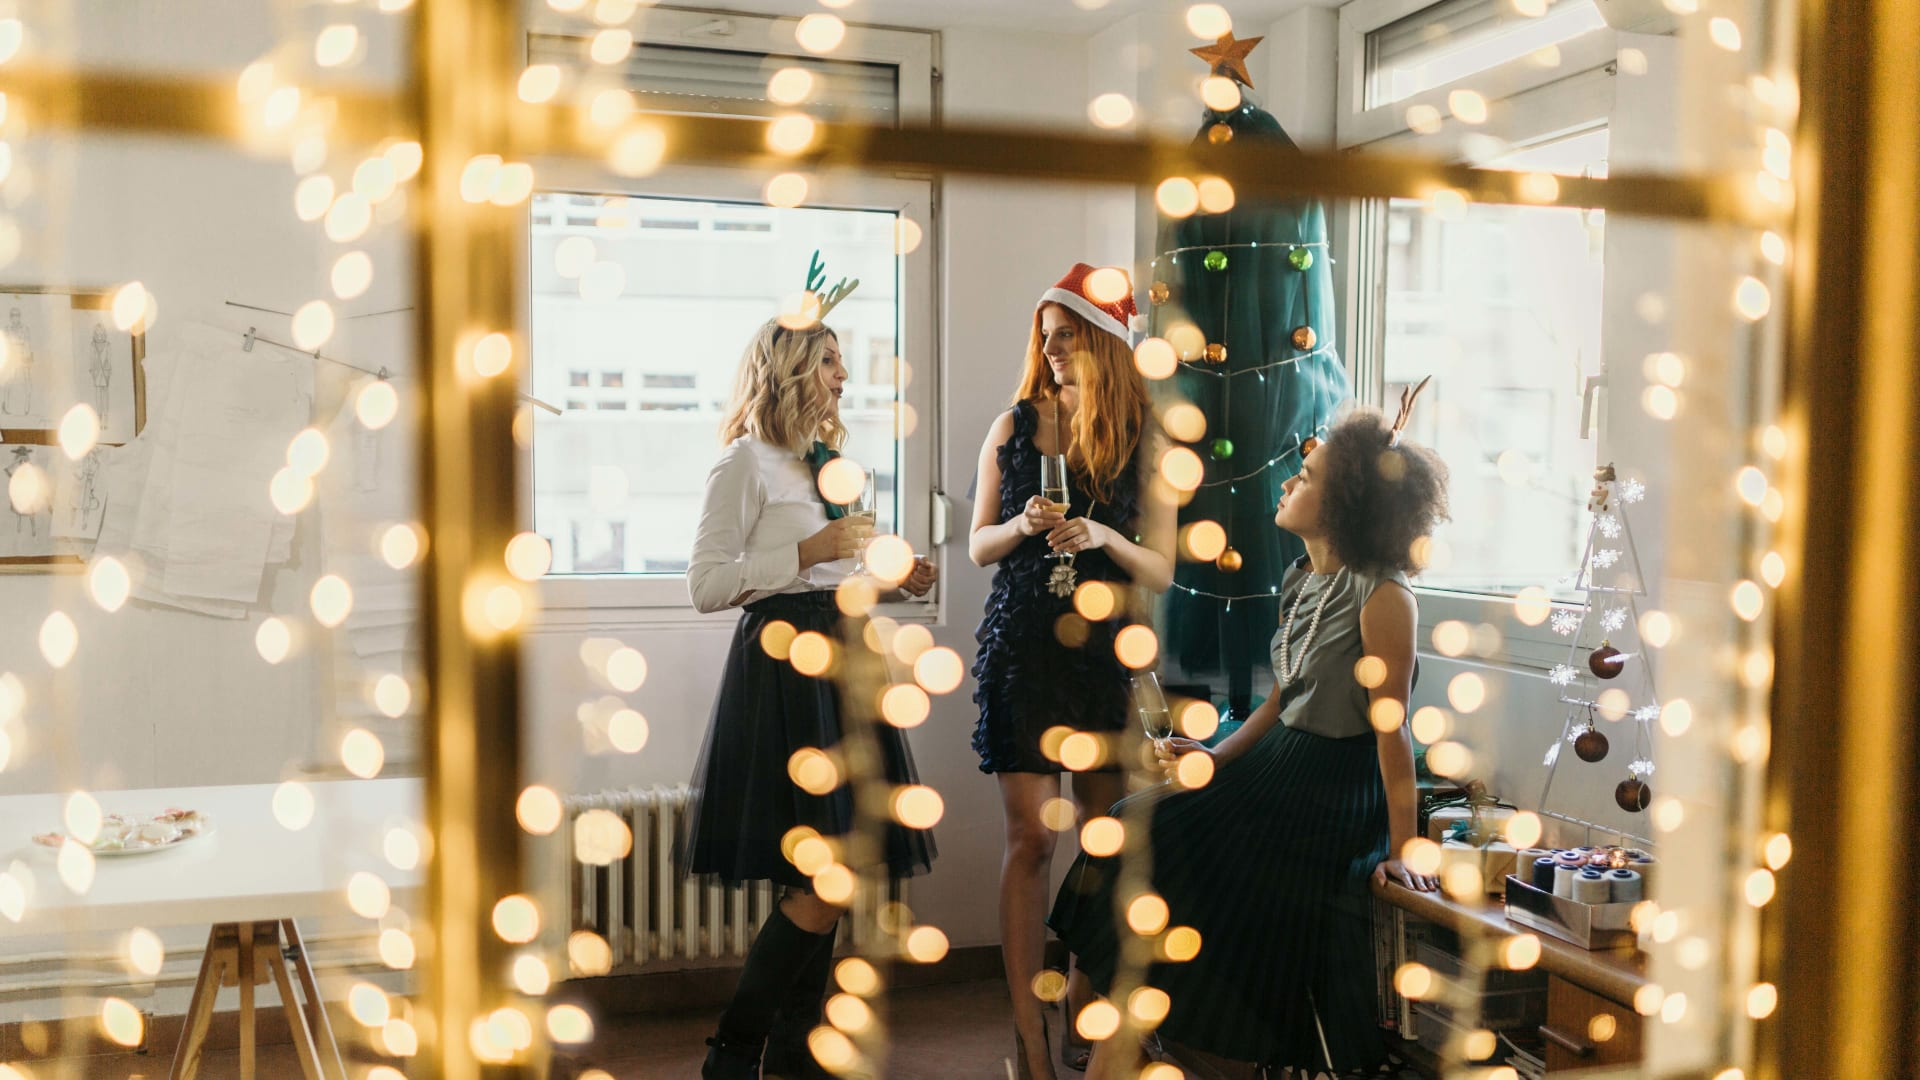 Your Questions About Holidays at Work, Answered